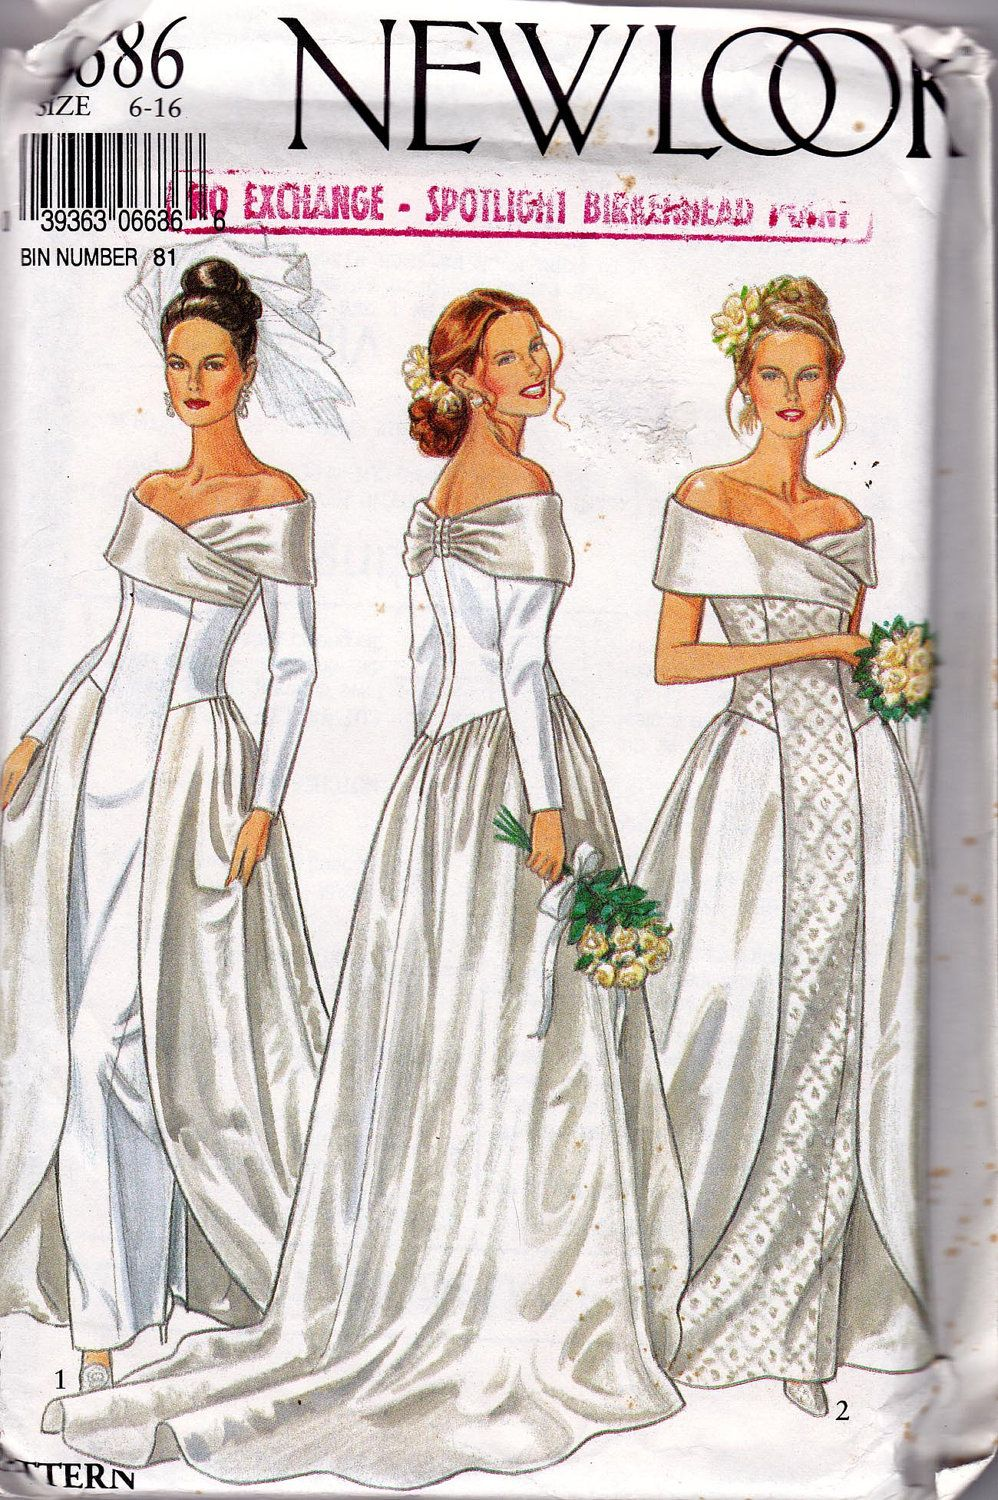 Sewing pattern new look 6686 wedding dresses sewing patterns sewing pattern new look 6686 wedding dresses jeuxipadfo Gallery